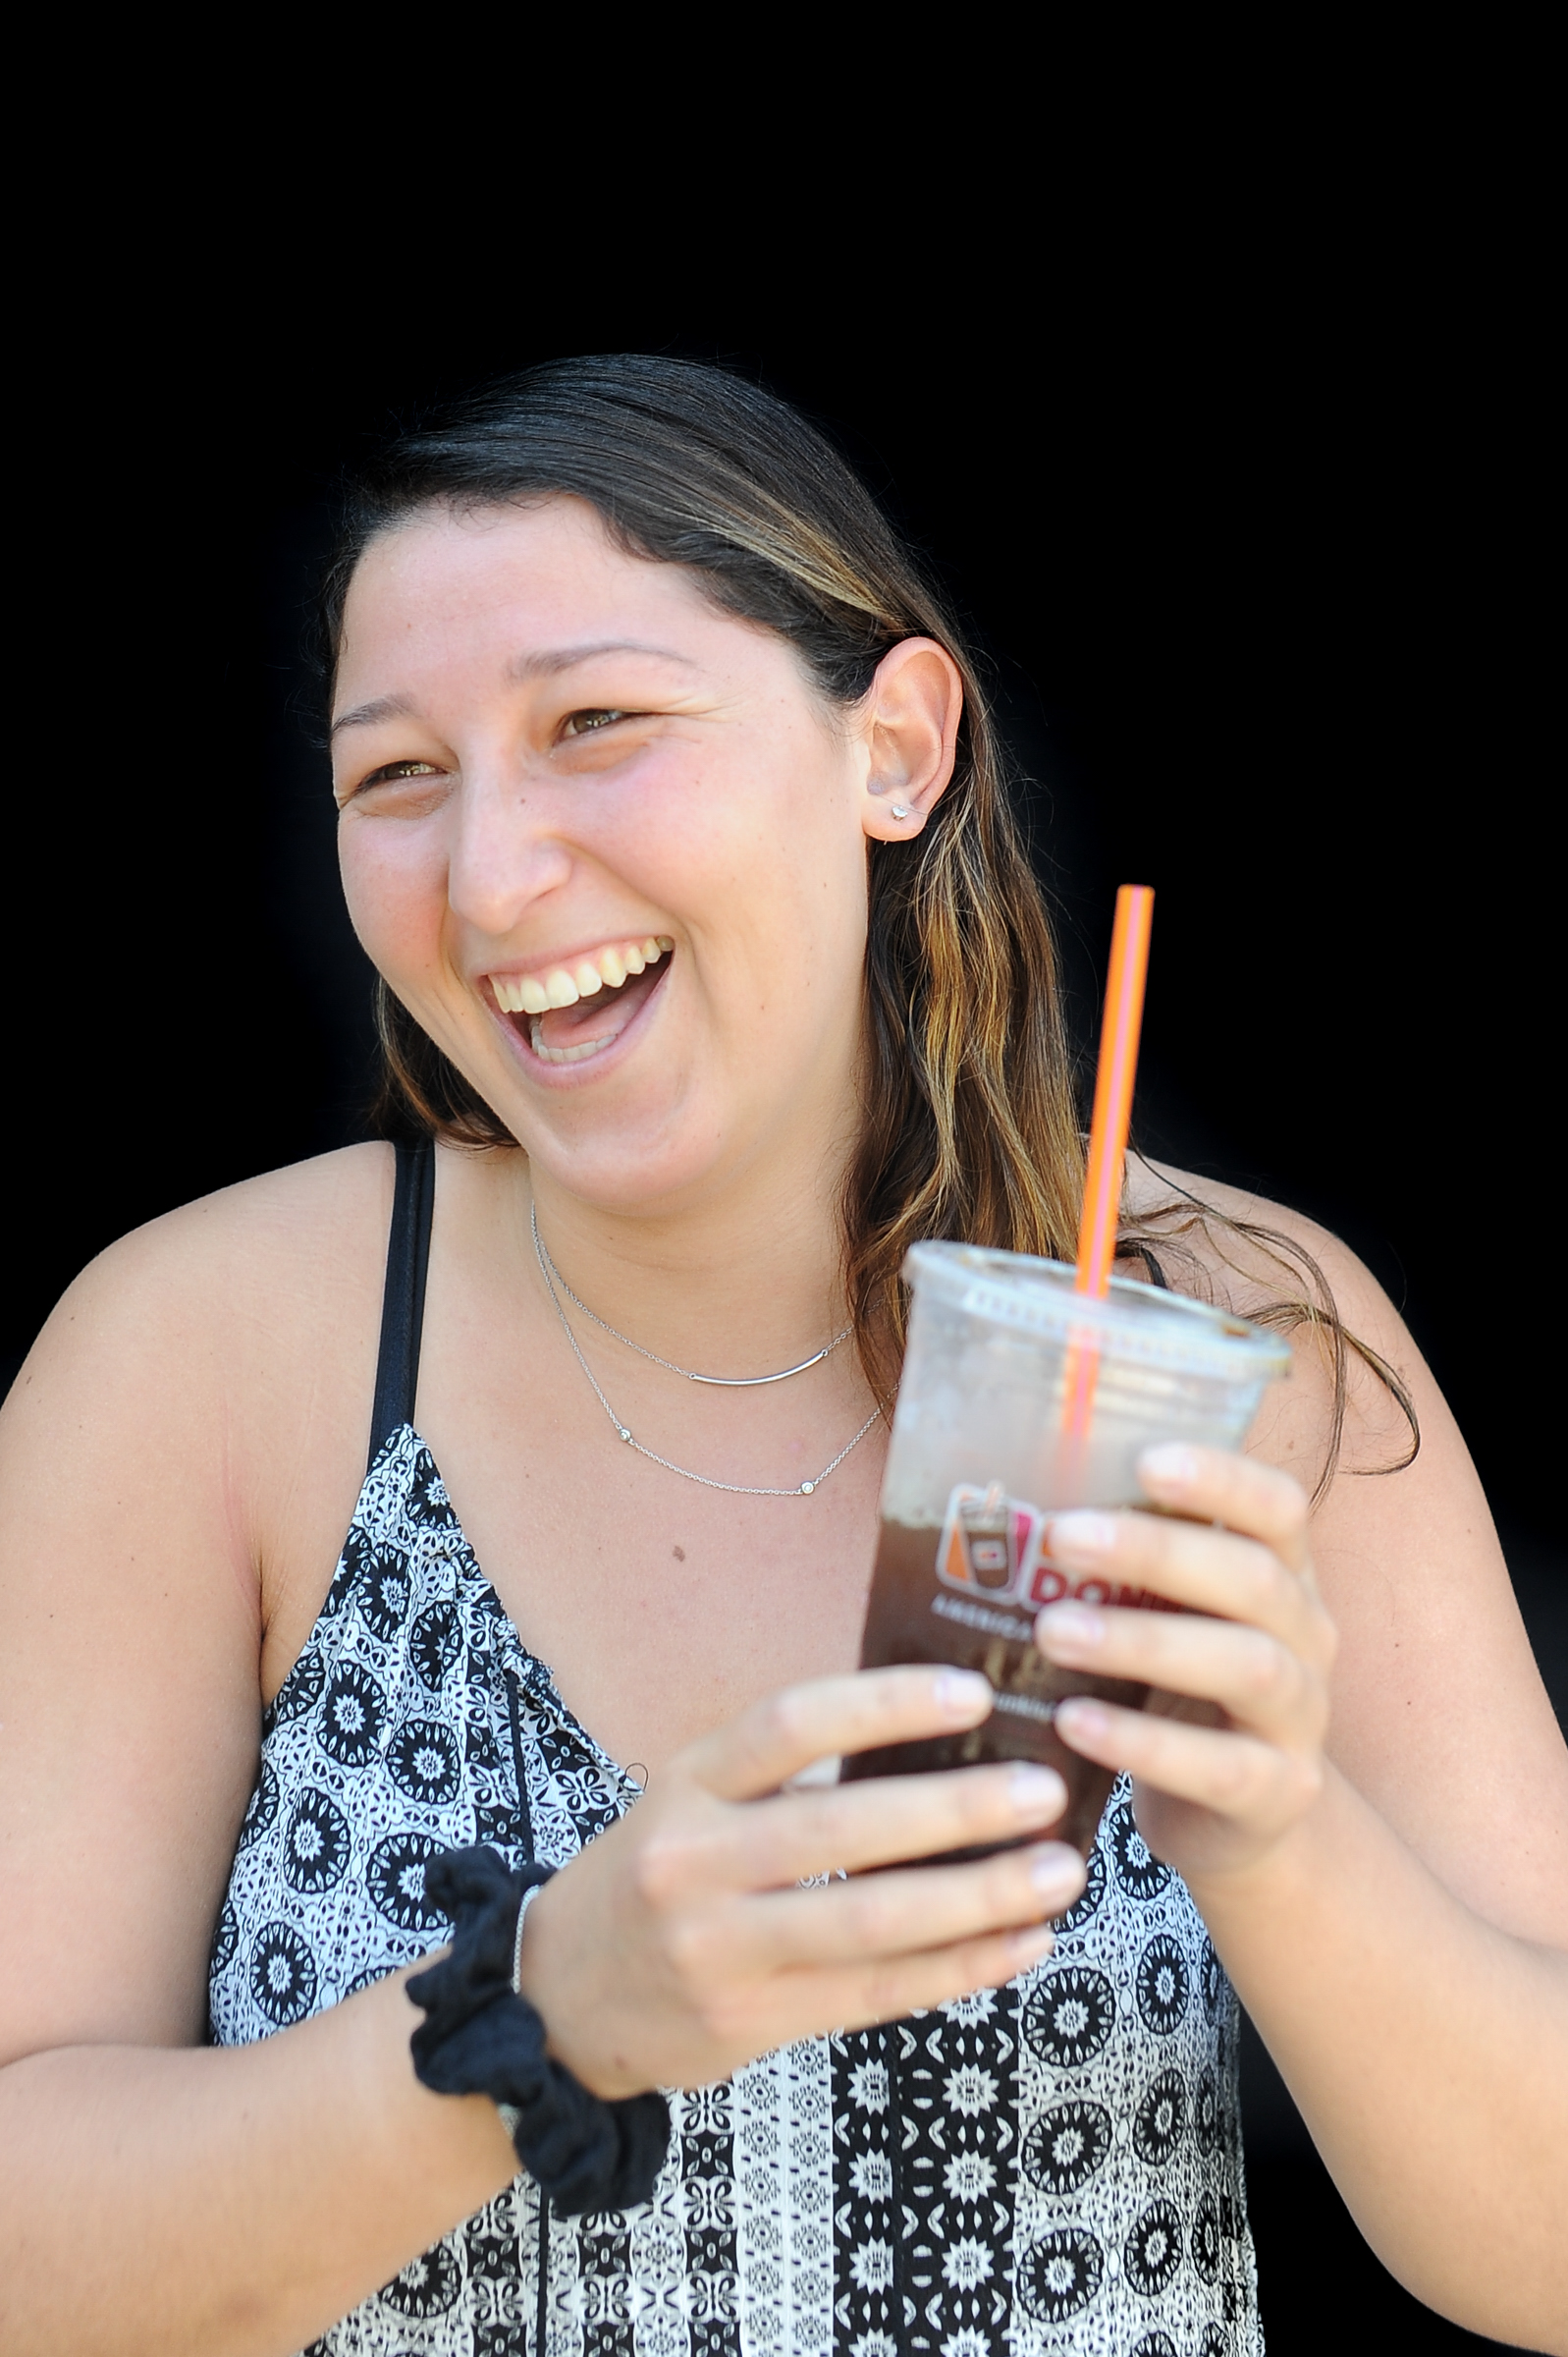 Name: Jamie MorgensternClass Year: 2018Major: ILRHometown: Lido Beach, NYActivities: ILR Student Government, ILR ambassador, Sigma Delta TauIf you could make up a major, what would it be?: Reality TVWhy would you be on the front page of The Cornell Daily Sun?: For bringing Ruth Bader Ginsburg to Ithaca for convocationBlurb: One major endless possibilities.